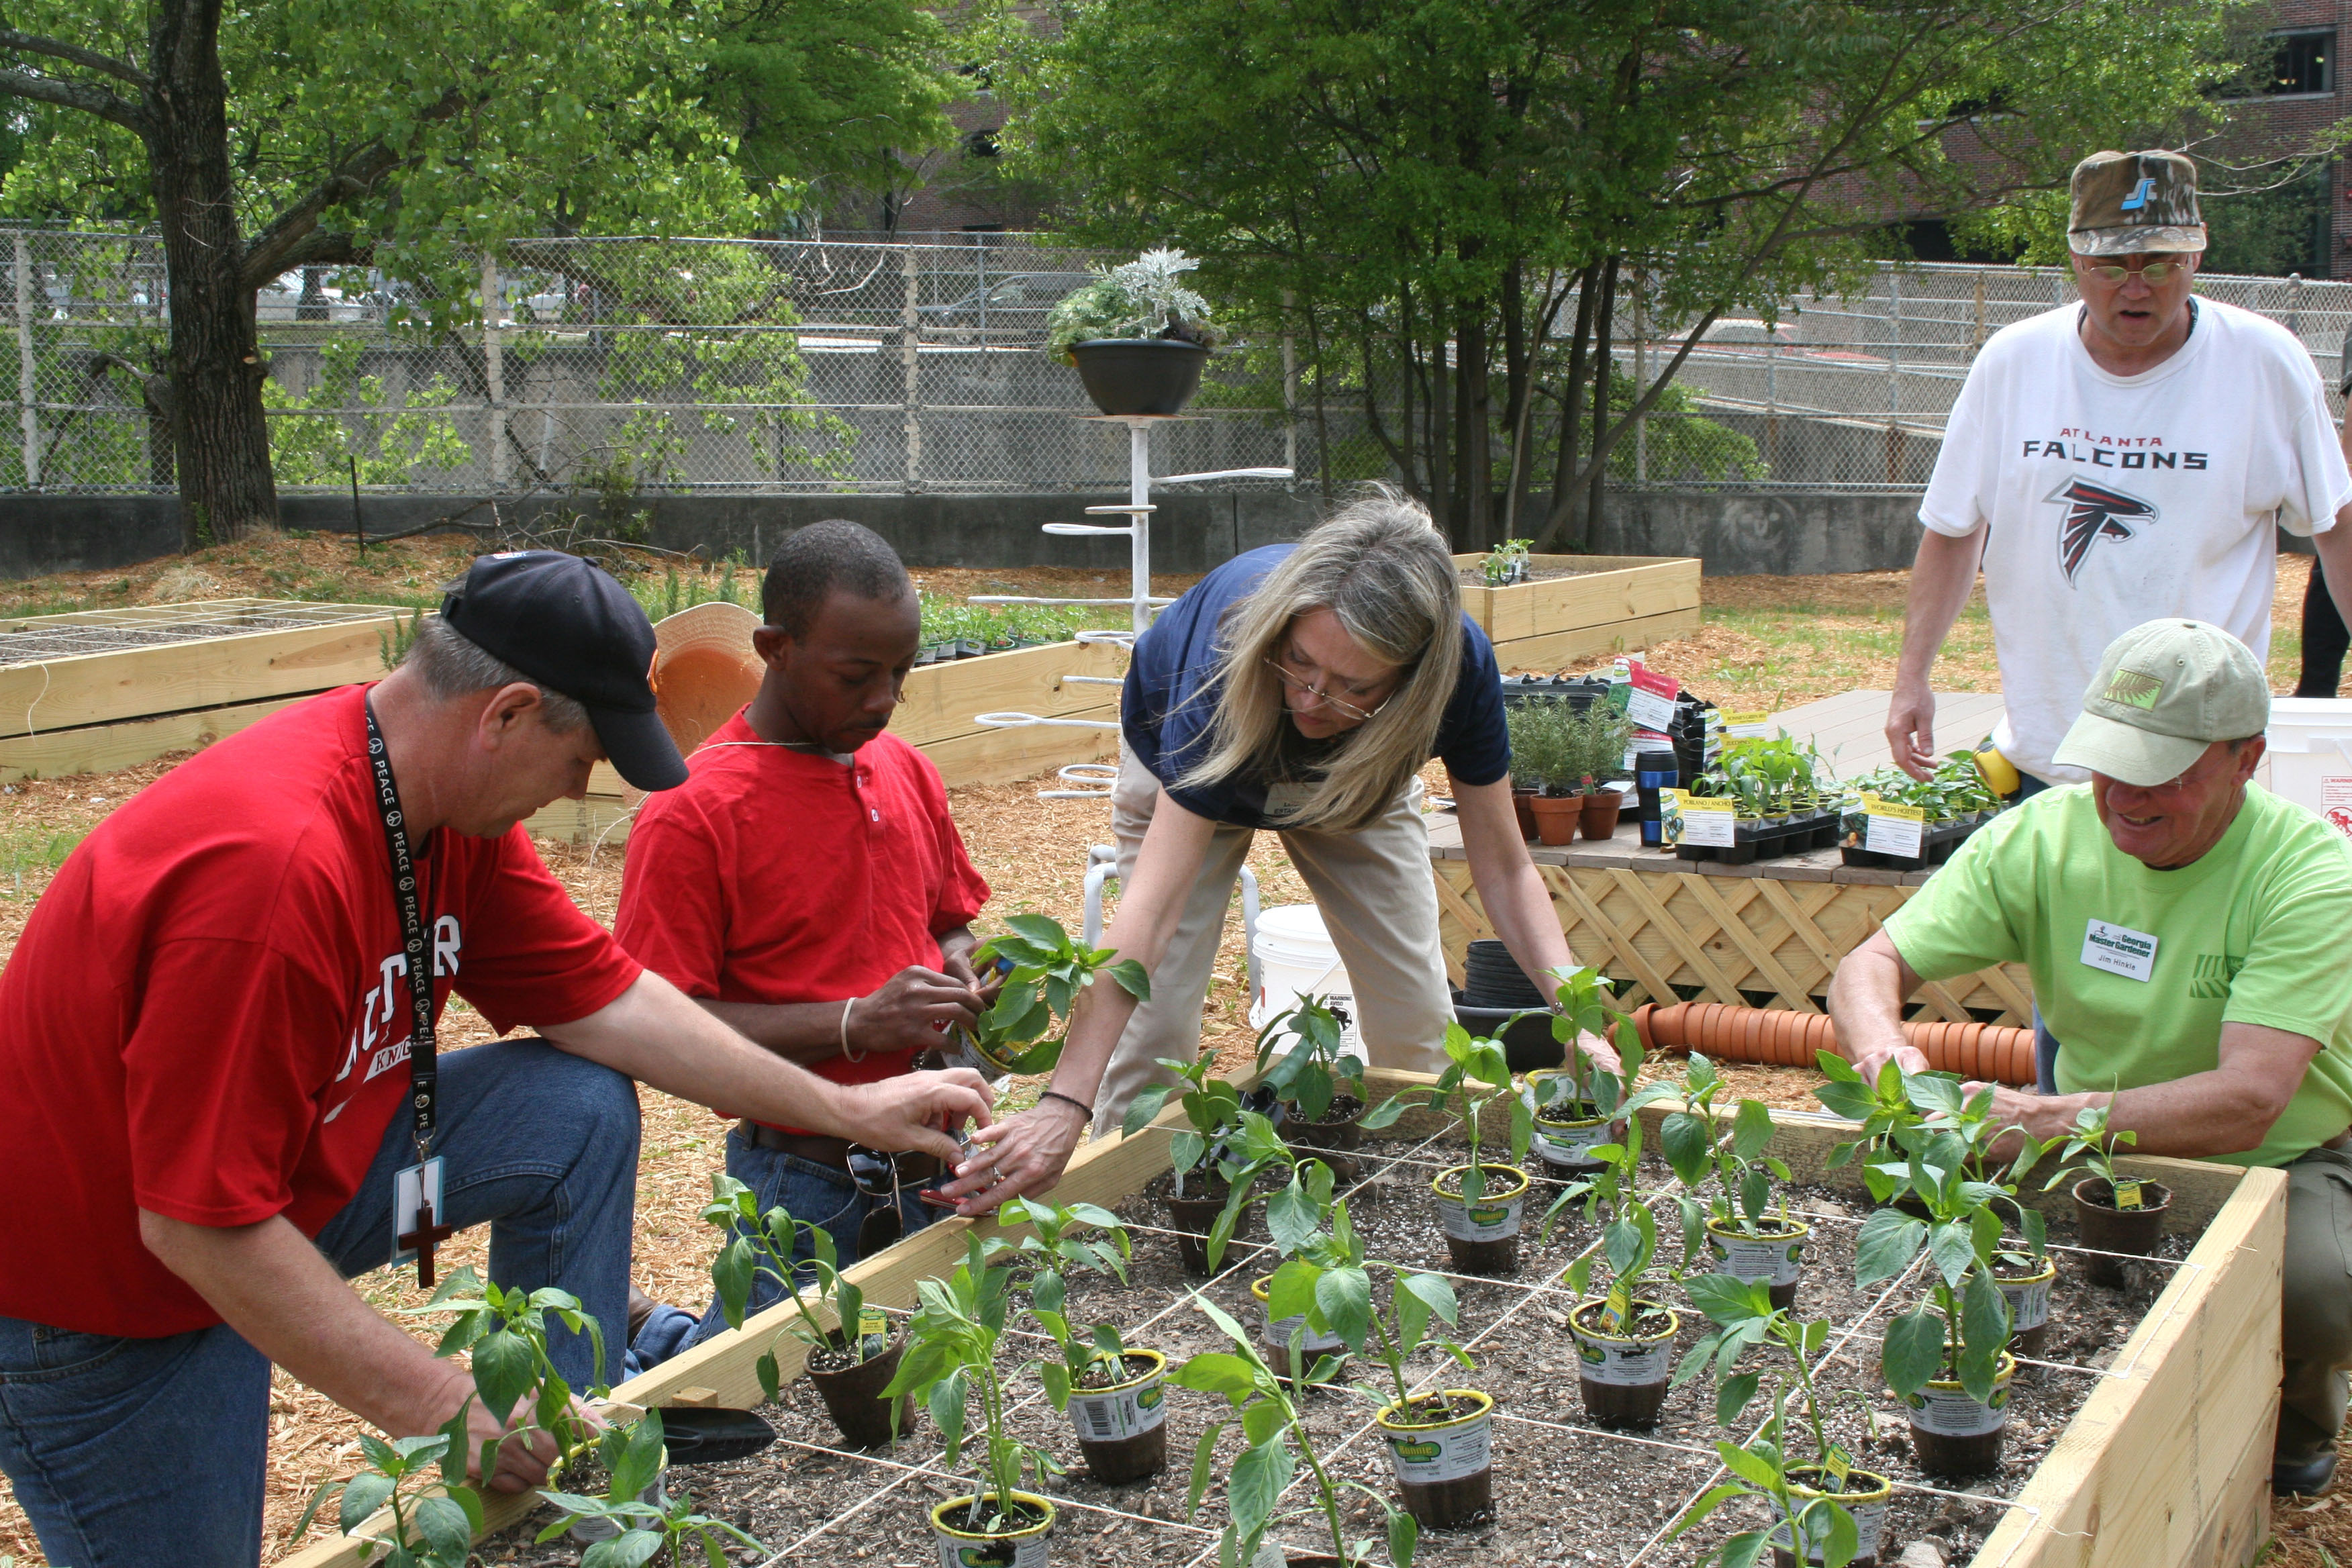 University of Georgia Cooperative Extension Agent Louise Estabrook (center) and UGA Master Gardener Jim Hinkle (far right) help residents at the Atlanta Mission install plants in the mission's garden.